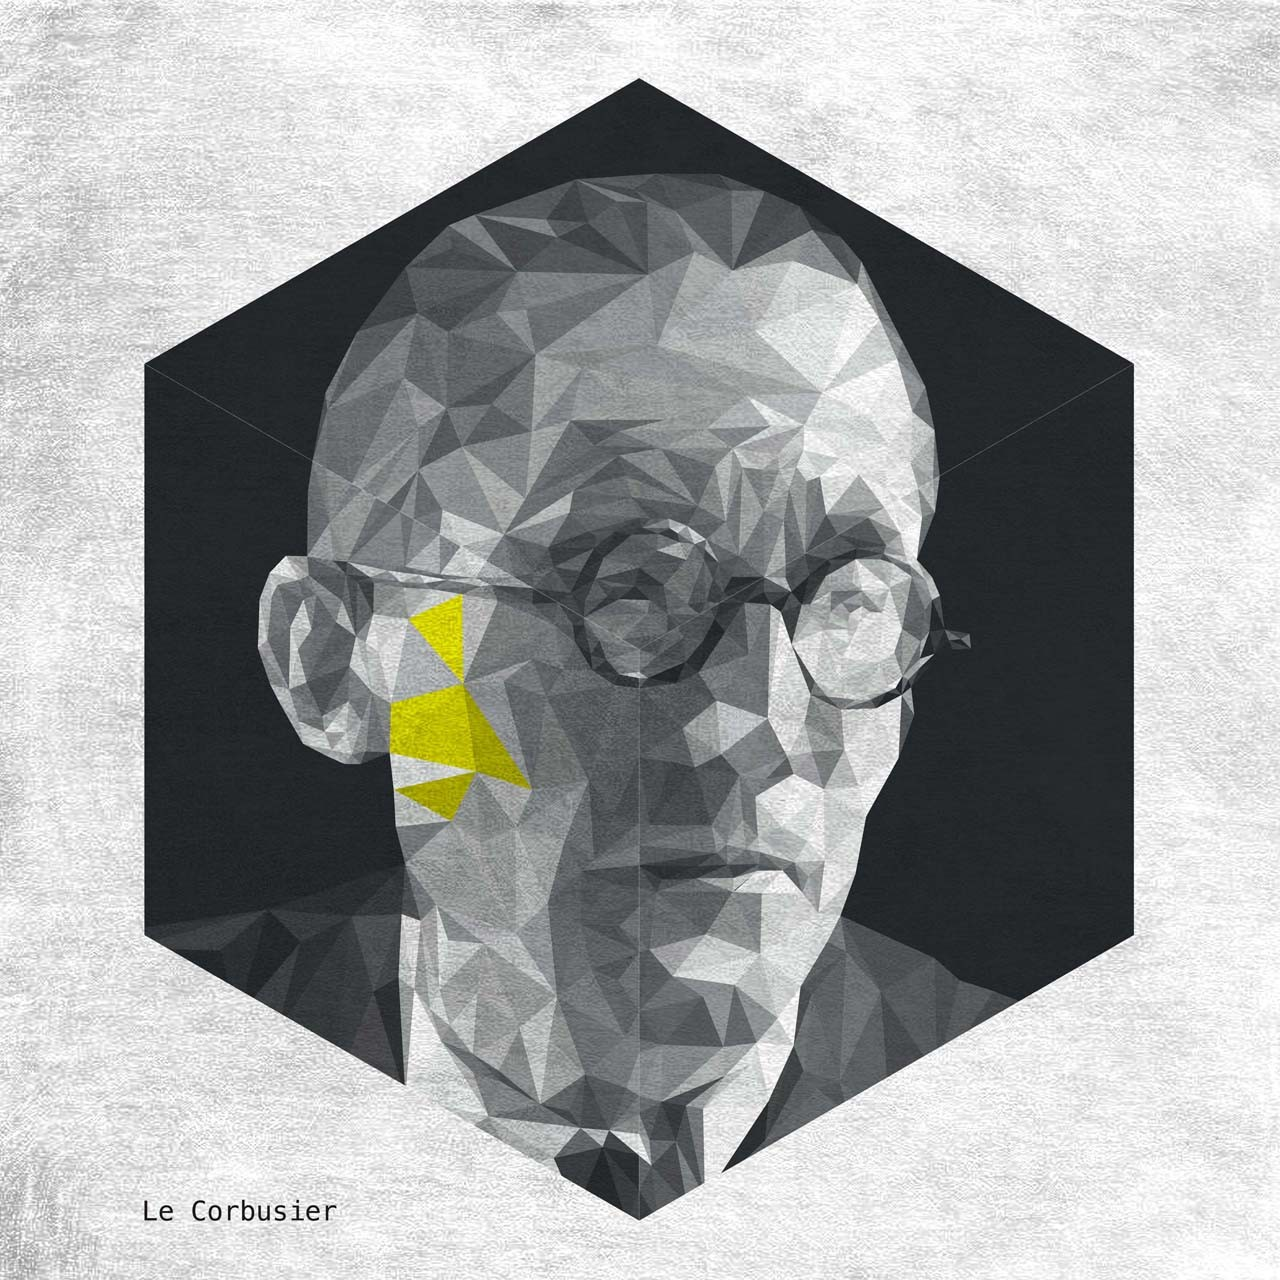 LE CORBUSIER. Image Courtesy of Yannick Martin